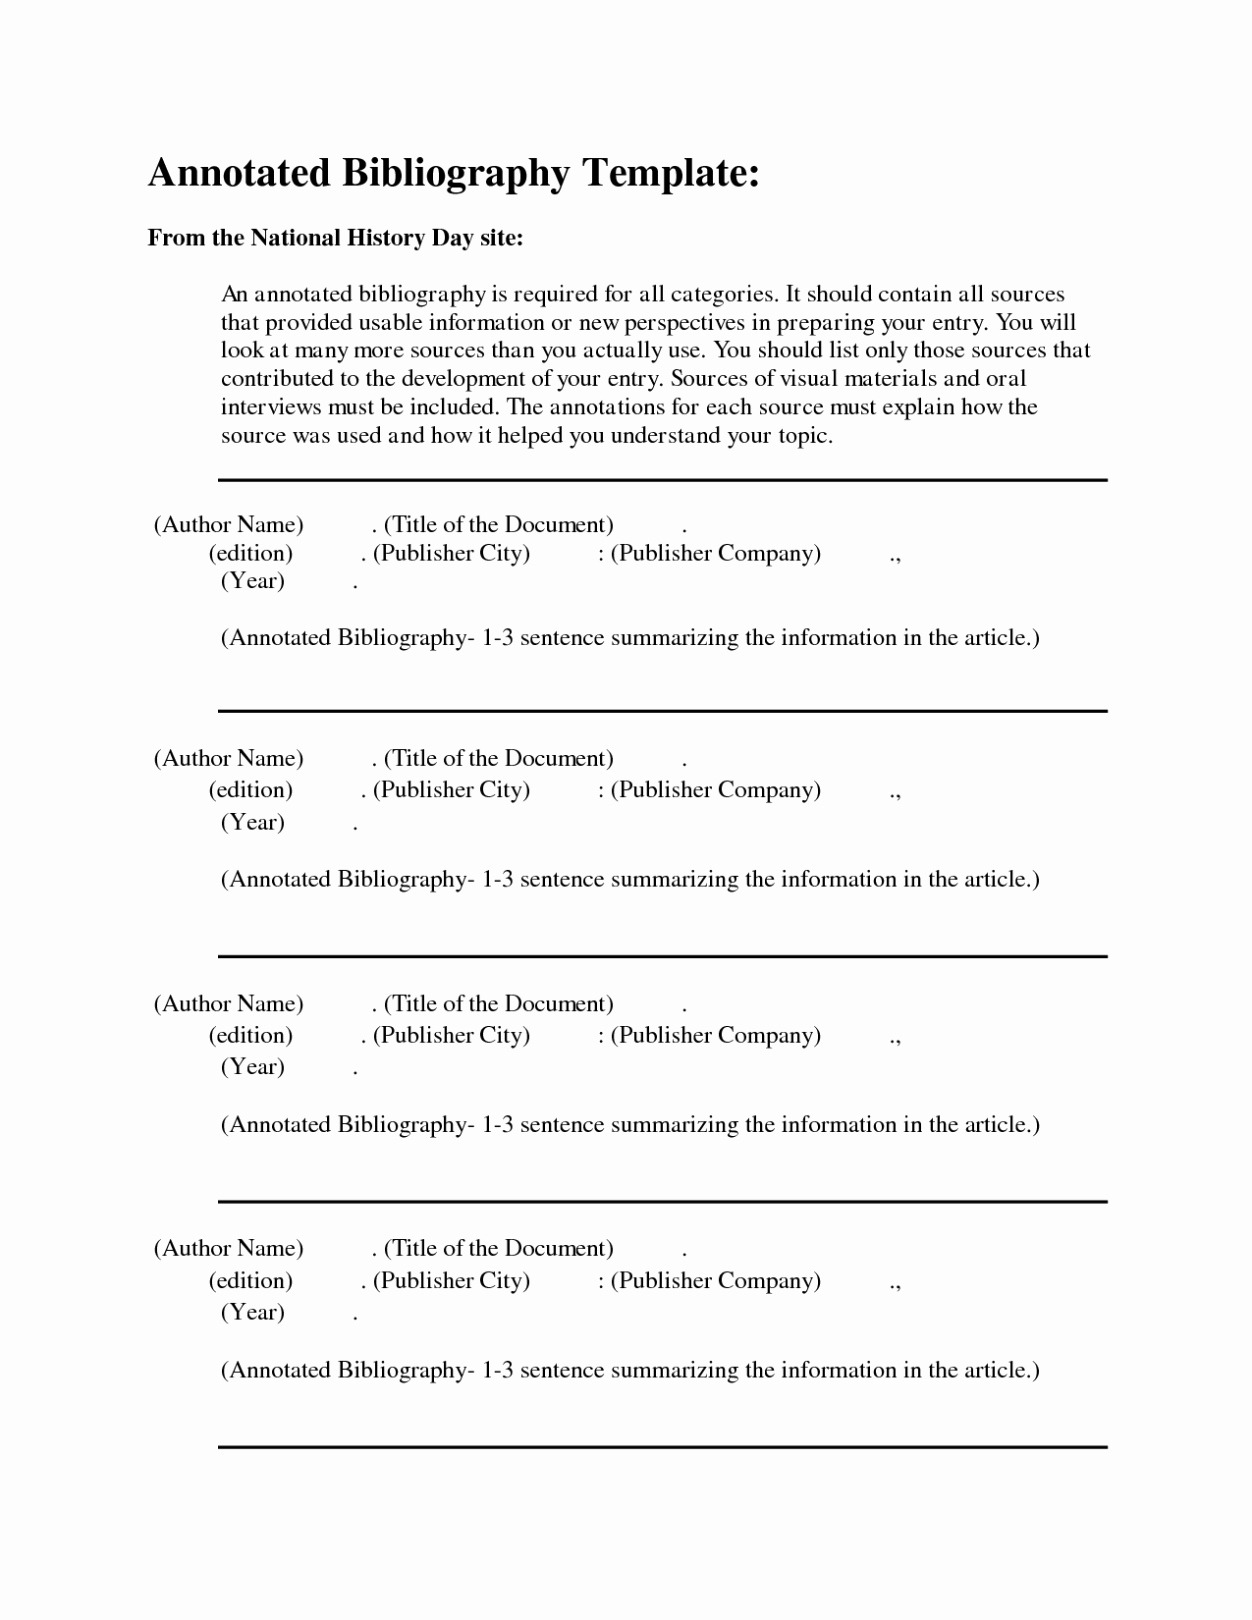 Annotated Bibliography Template Apa Best Of Apa format Annotated Bibliography Example Template